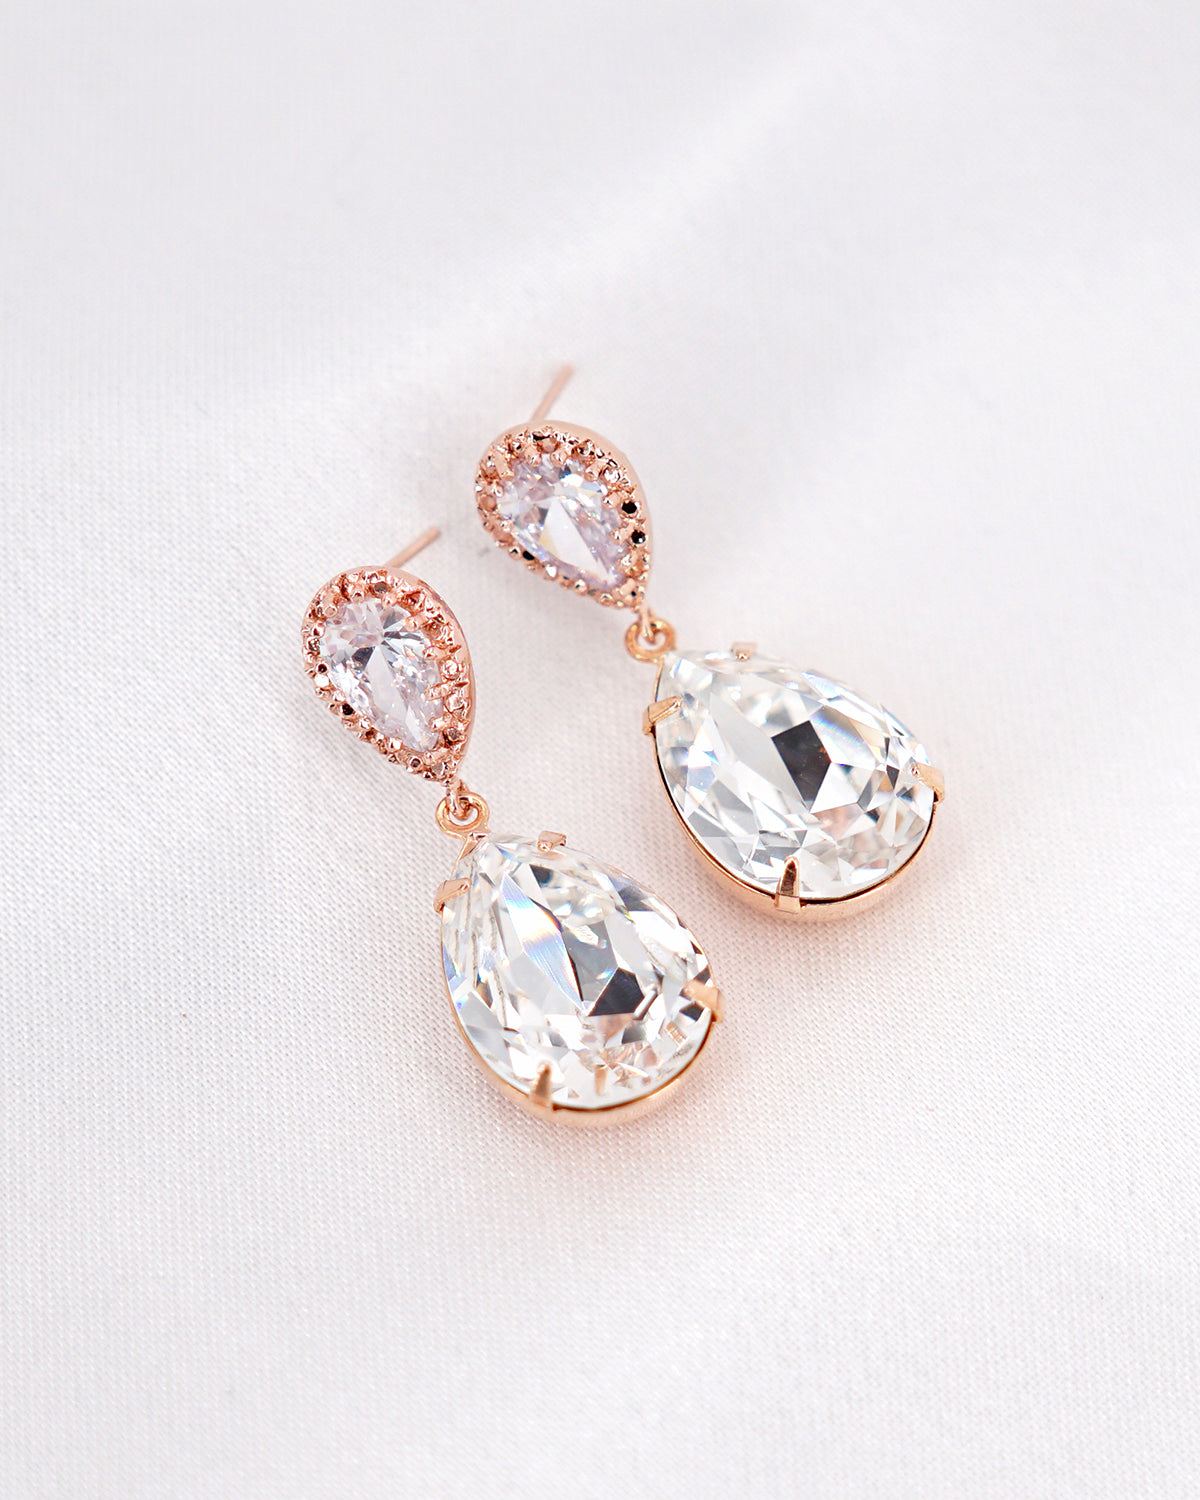 Rose Gold Crystal Earrings | Wedding Bride Bridesmaids Jewelry Gift